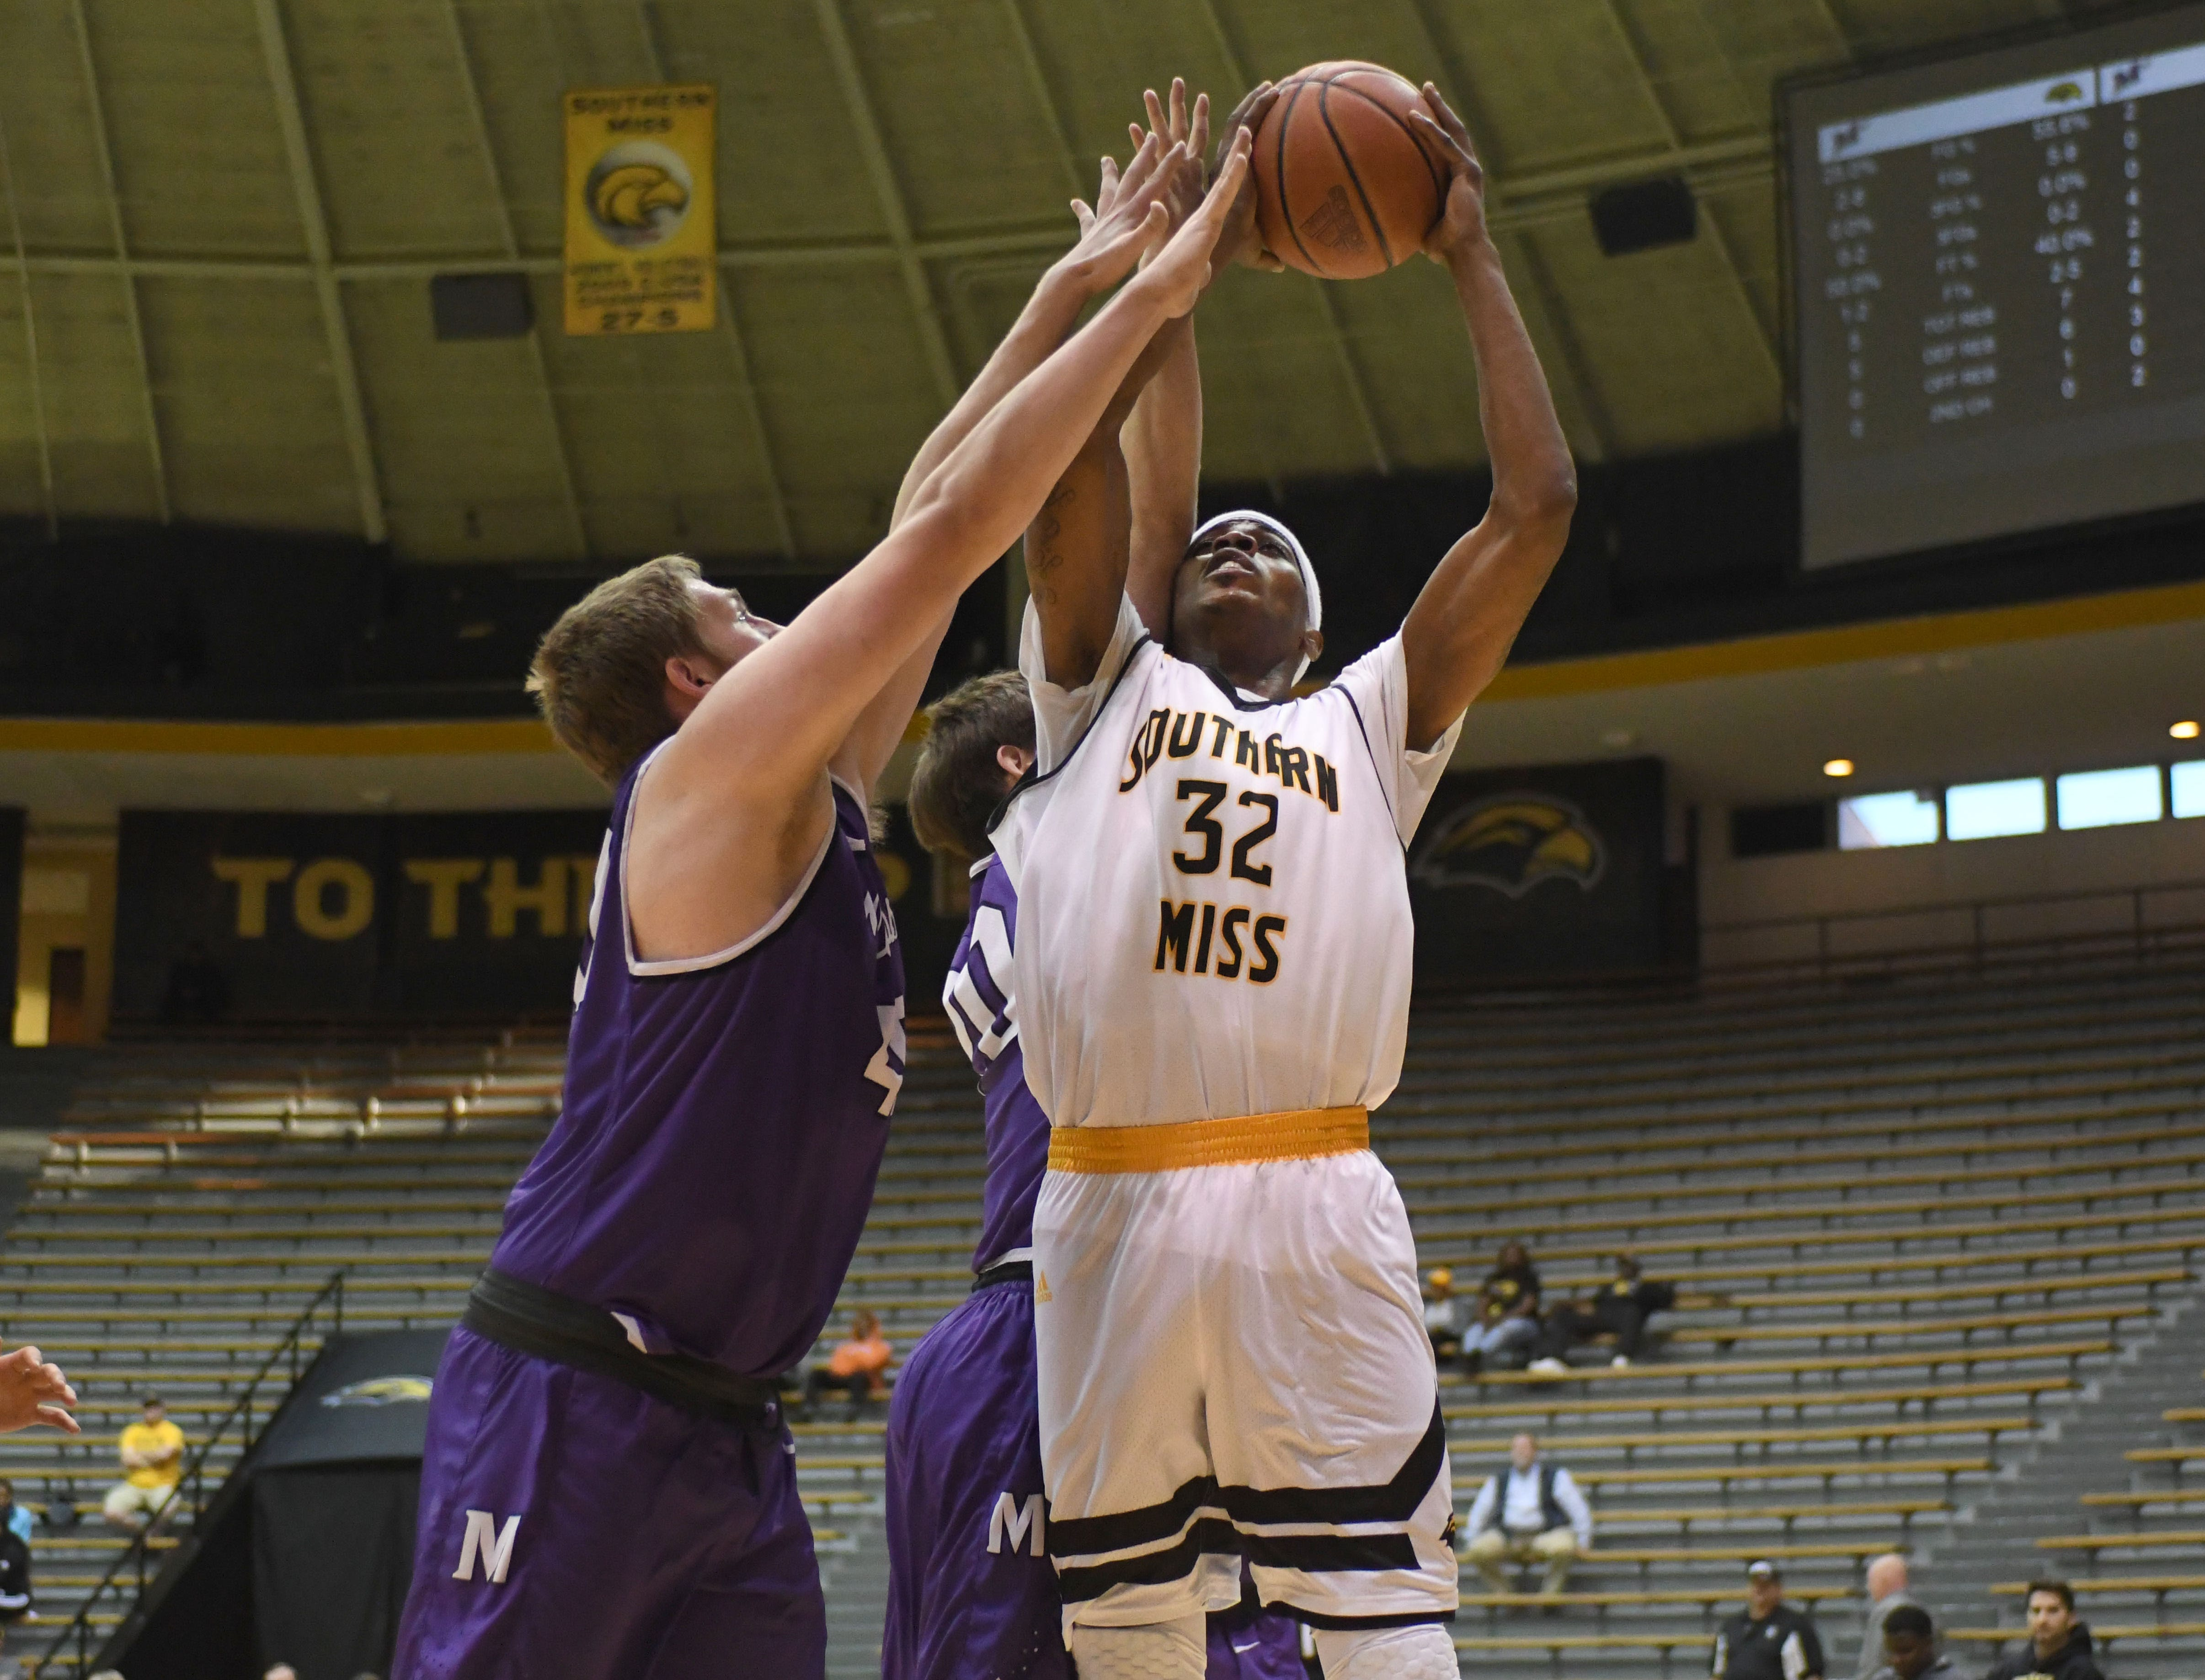 Southern Miss forward Leonard Harper-Baker shoots for the basket in a game against Millsaps in Reed Green Coliseum on Tuesday, December 11, 2018.